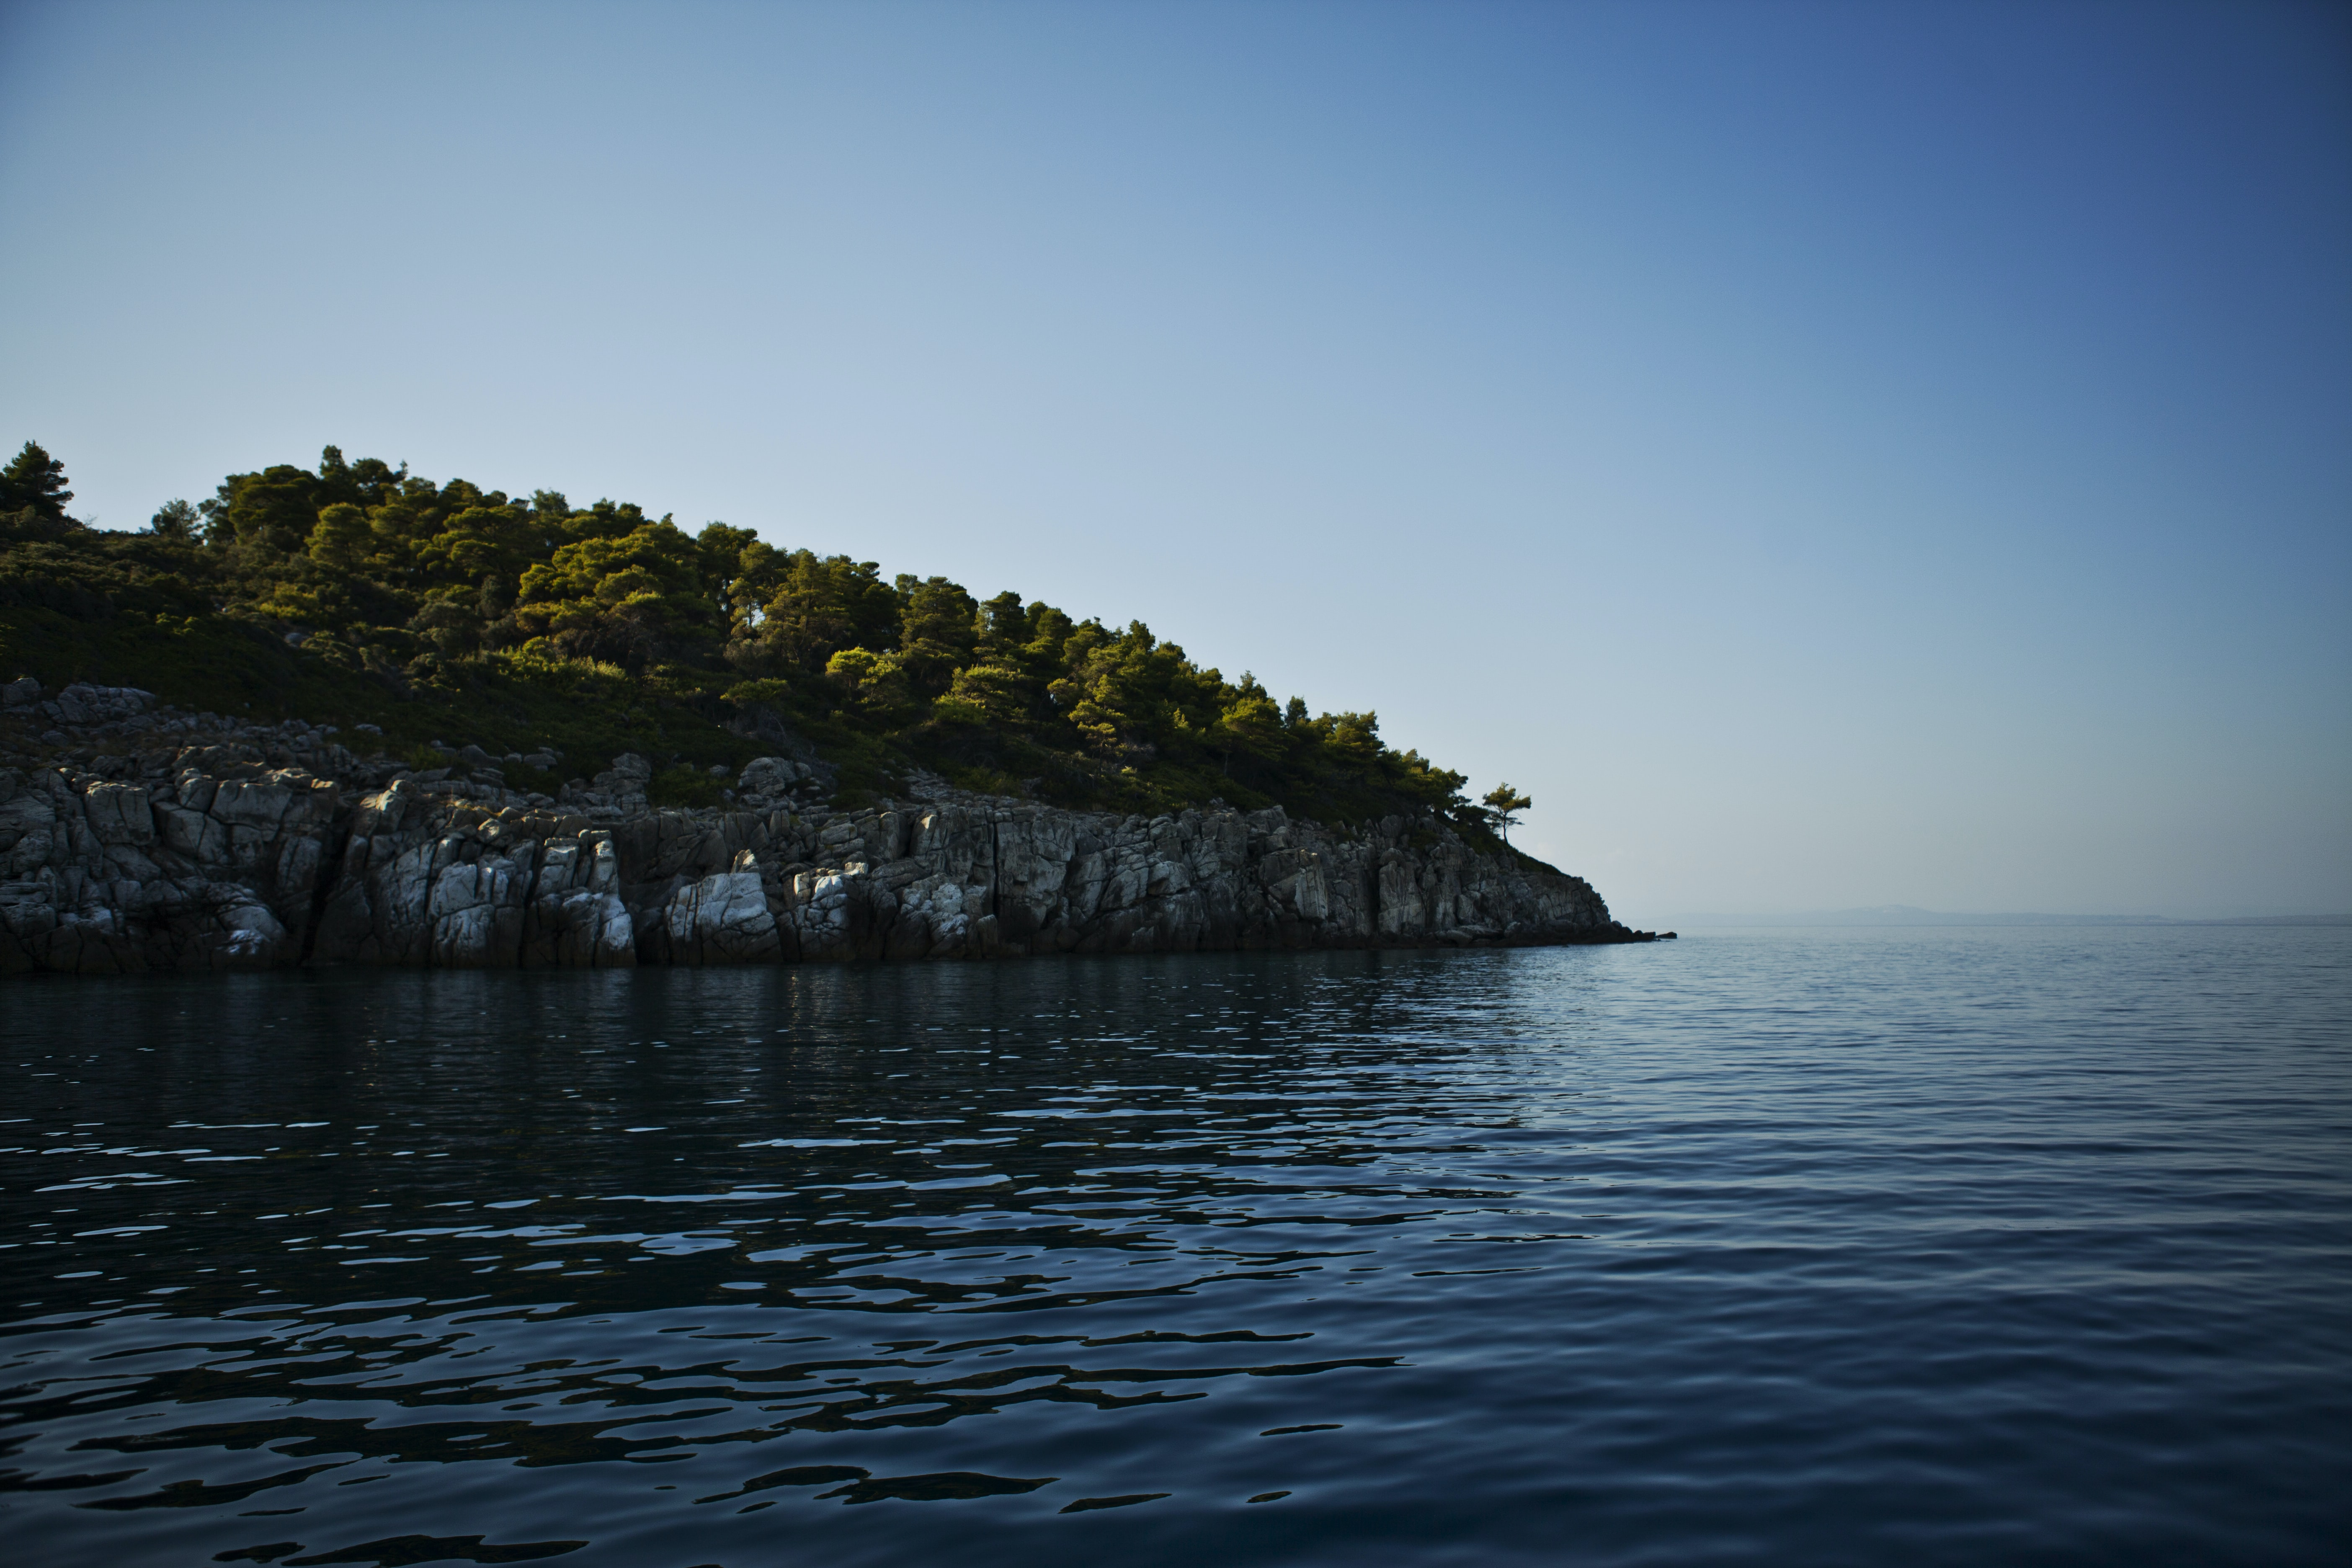 A jagged cliff covered with trees by a vast body of water